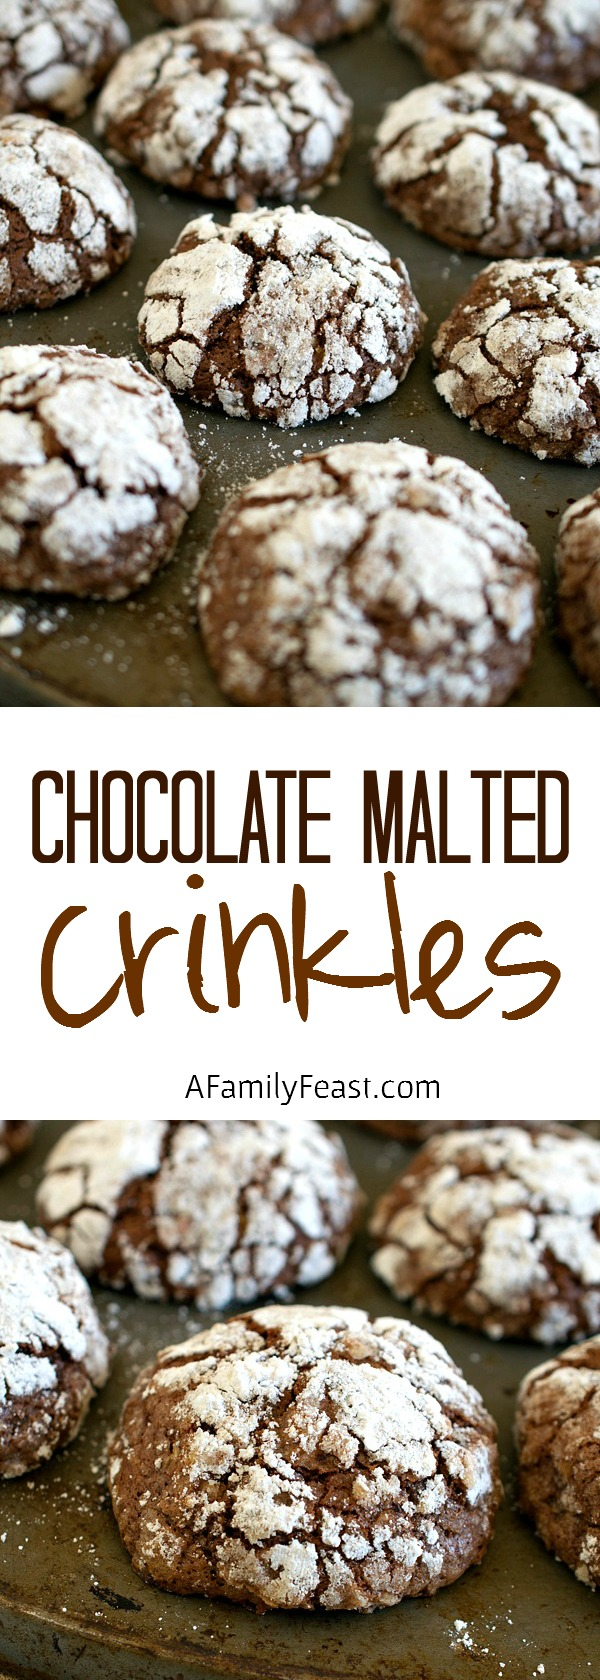 Chocolate Malted Crinkles - A delicious variation on the classic Chocolate Crinkles Cookie recipe!